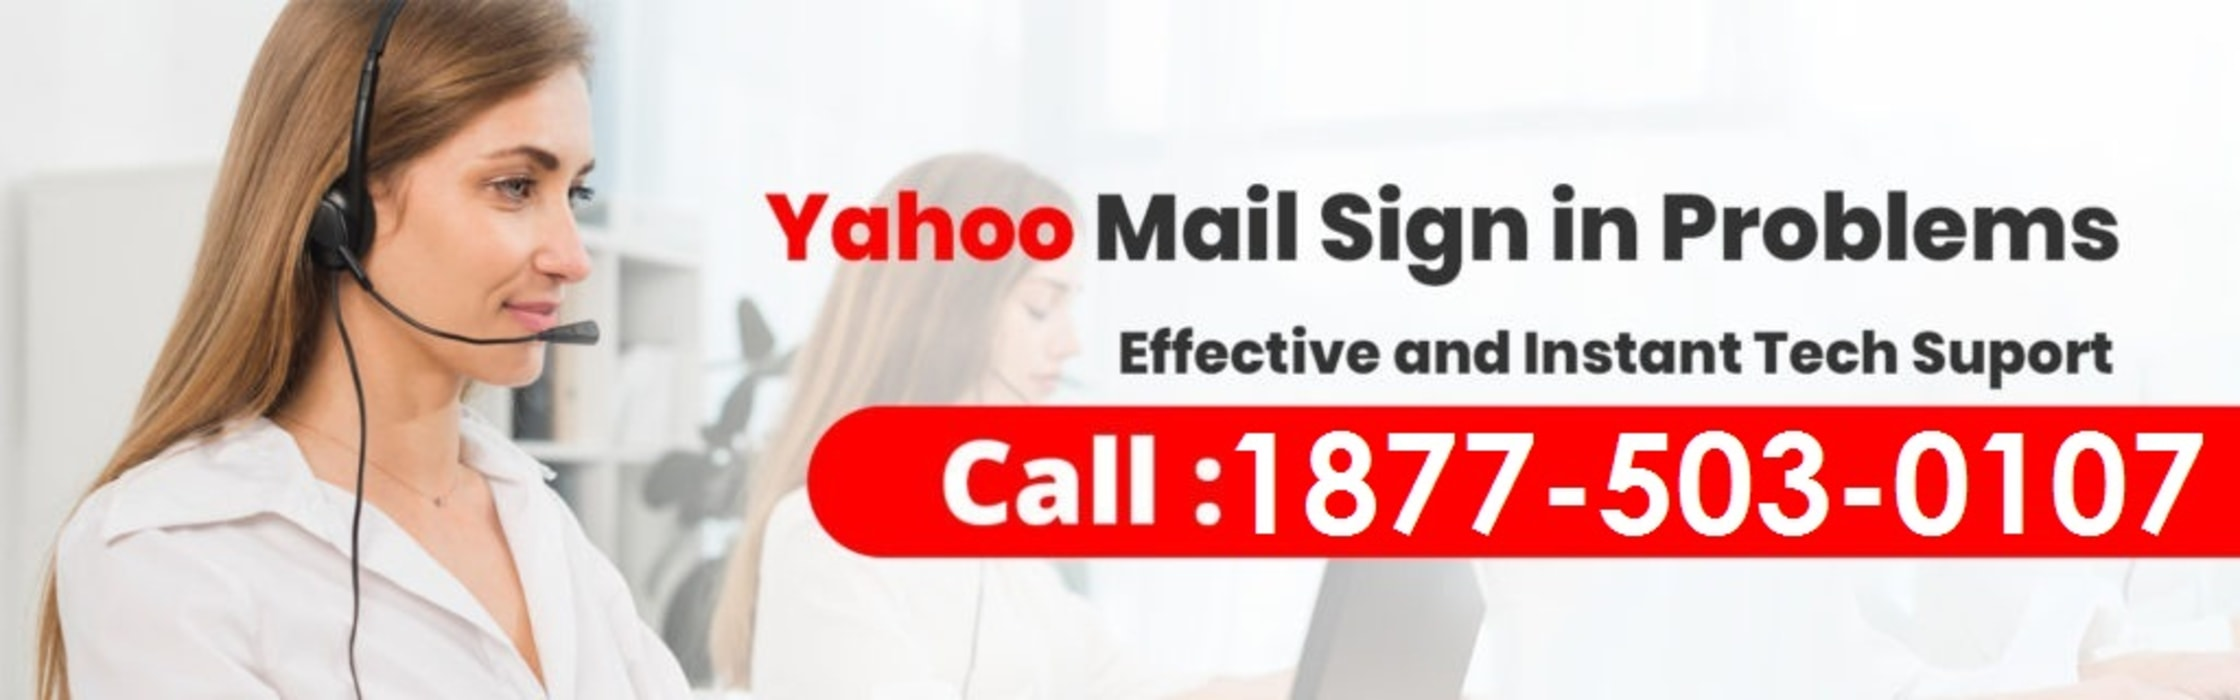 Yahoo Mail Sign In Problem Yahoo Mail Support Number 1877-503-0107 Conference Centres Copper/Bronze/Brass Metallic/Silver